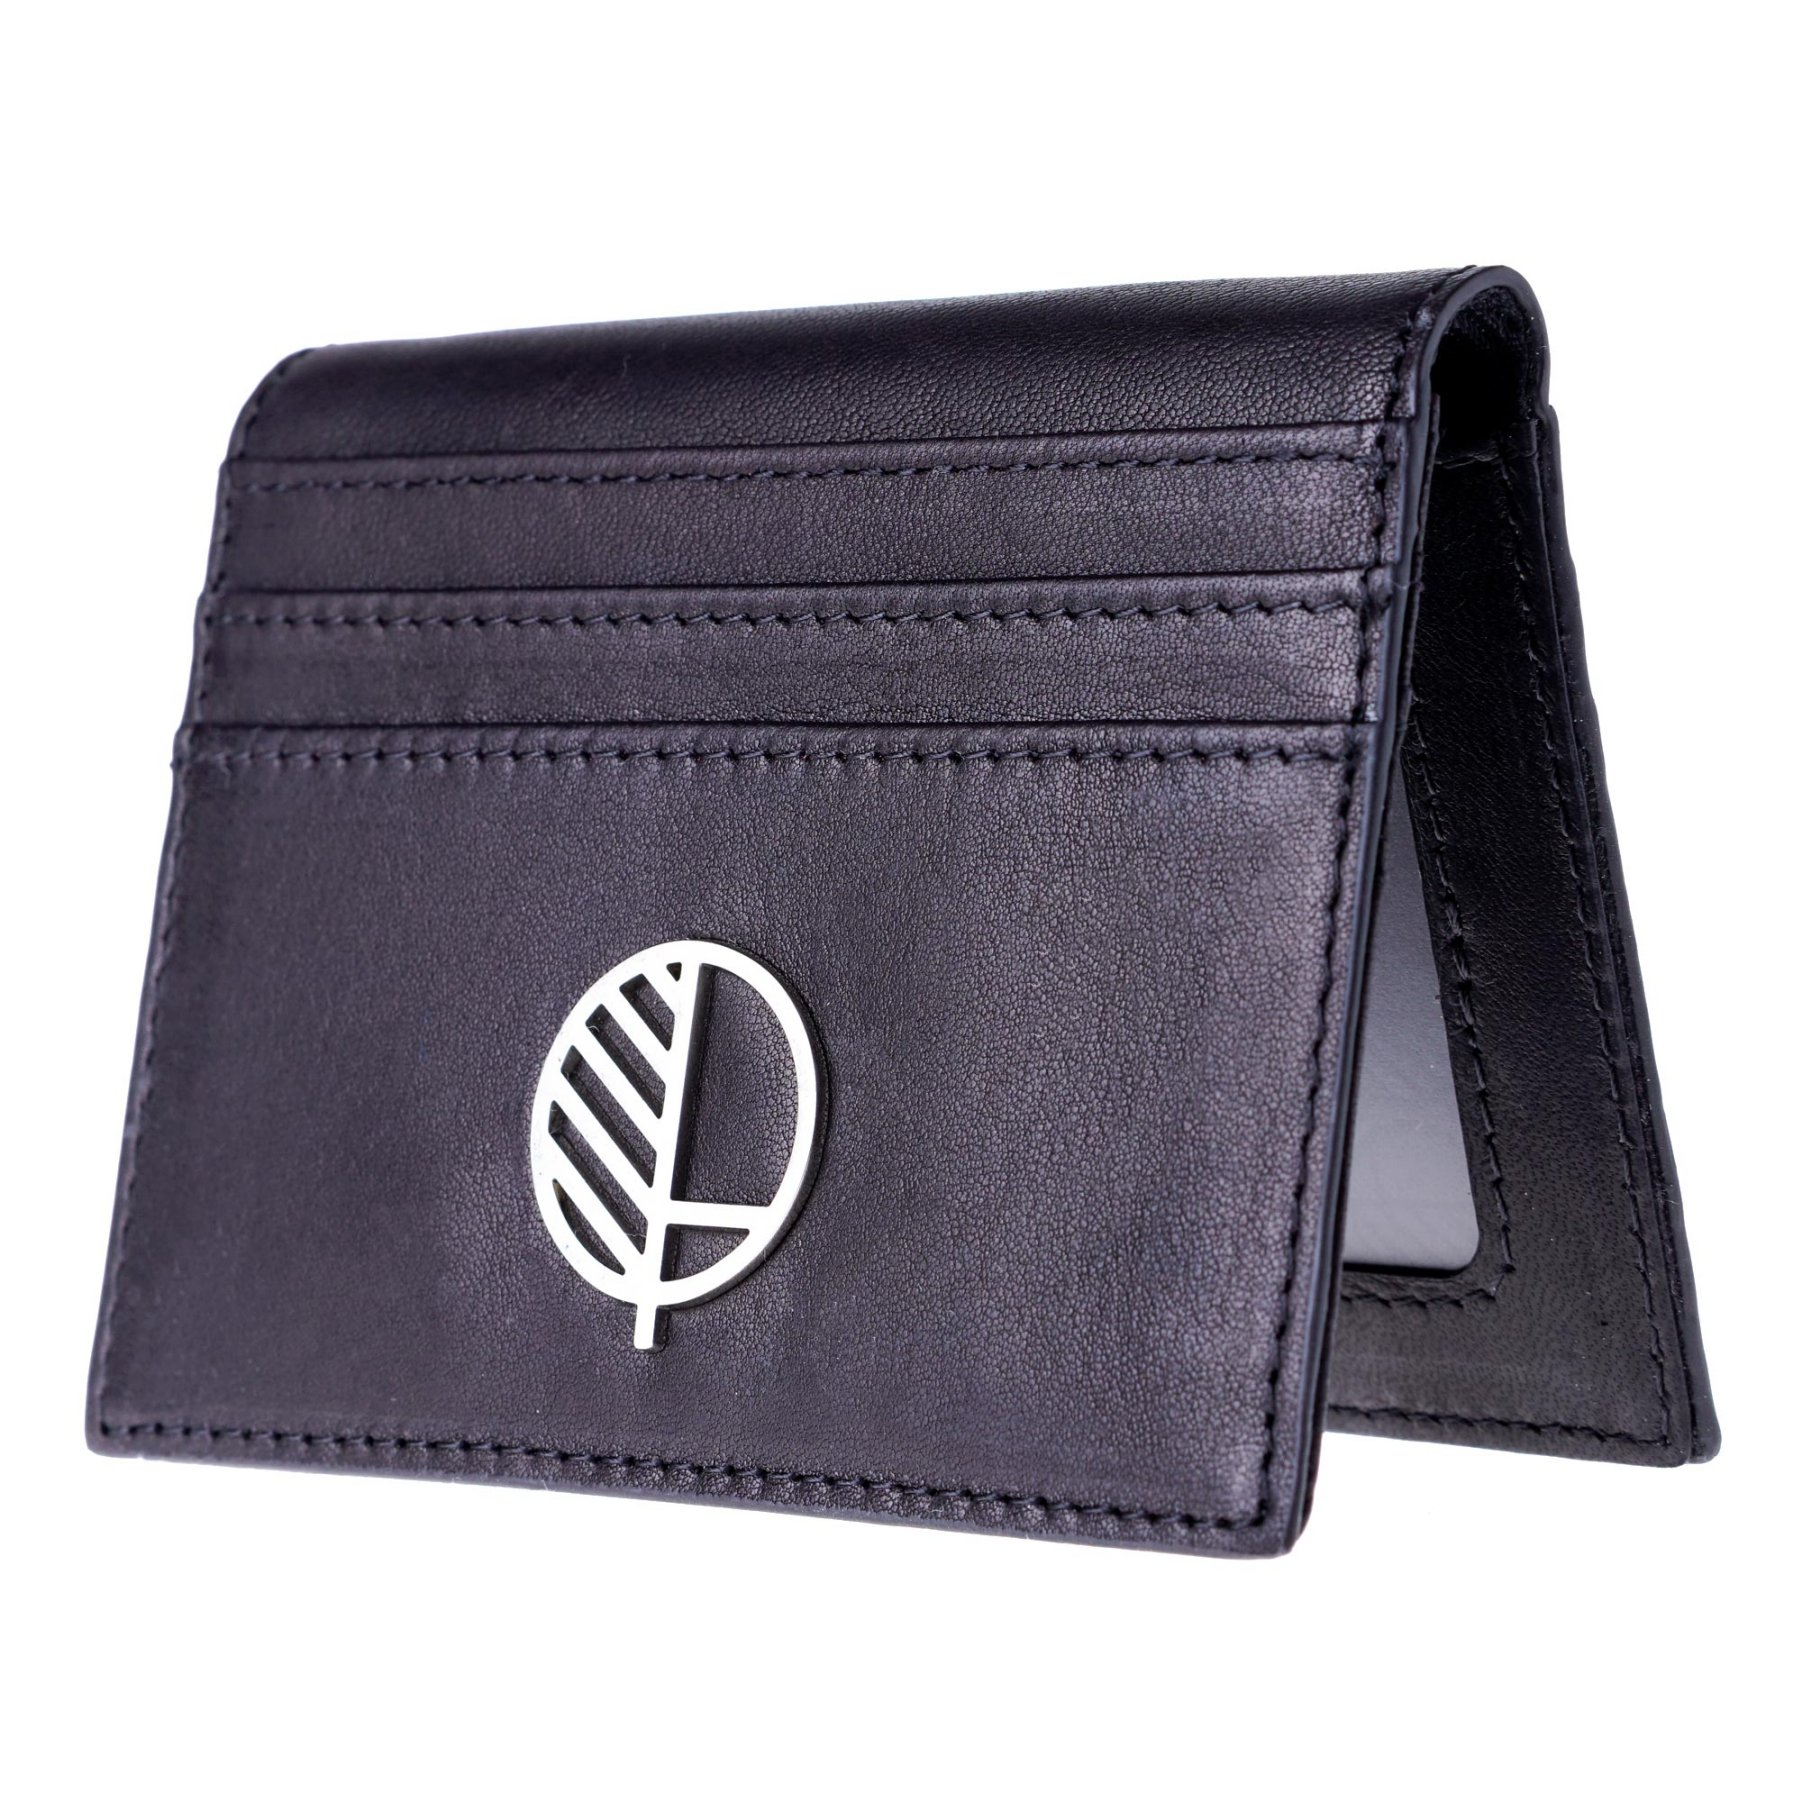 Mens Premium Real Leather Compact Wallet and Large Credit Card Holder with ID Window in Stunning, Sensuous, Genuine British Leather. The ''Active'' from Drew Lennox in Buttery Soft Verglas Black.